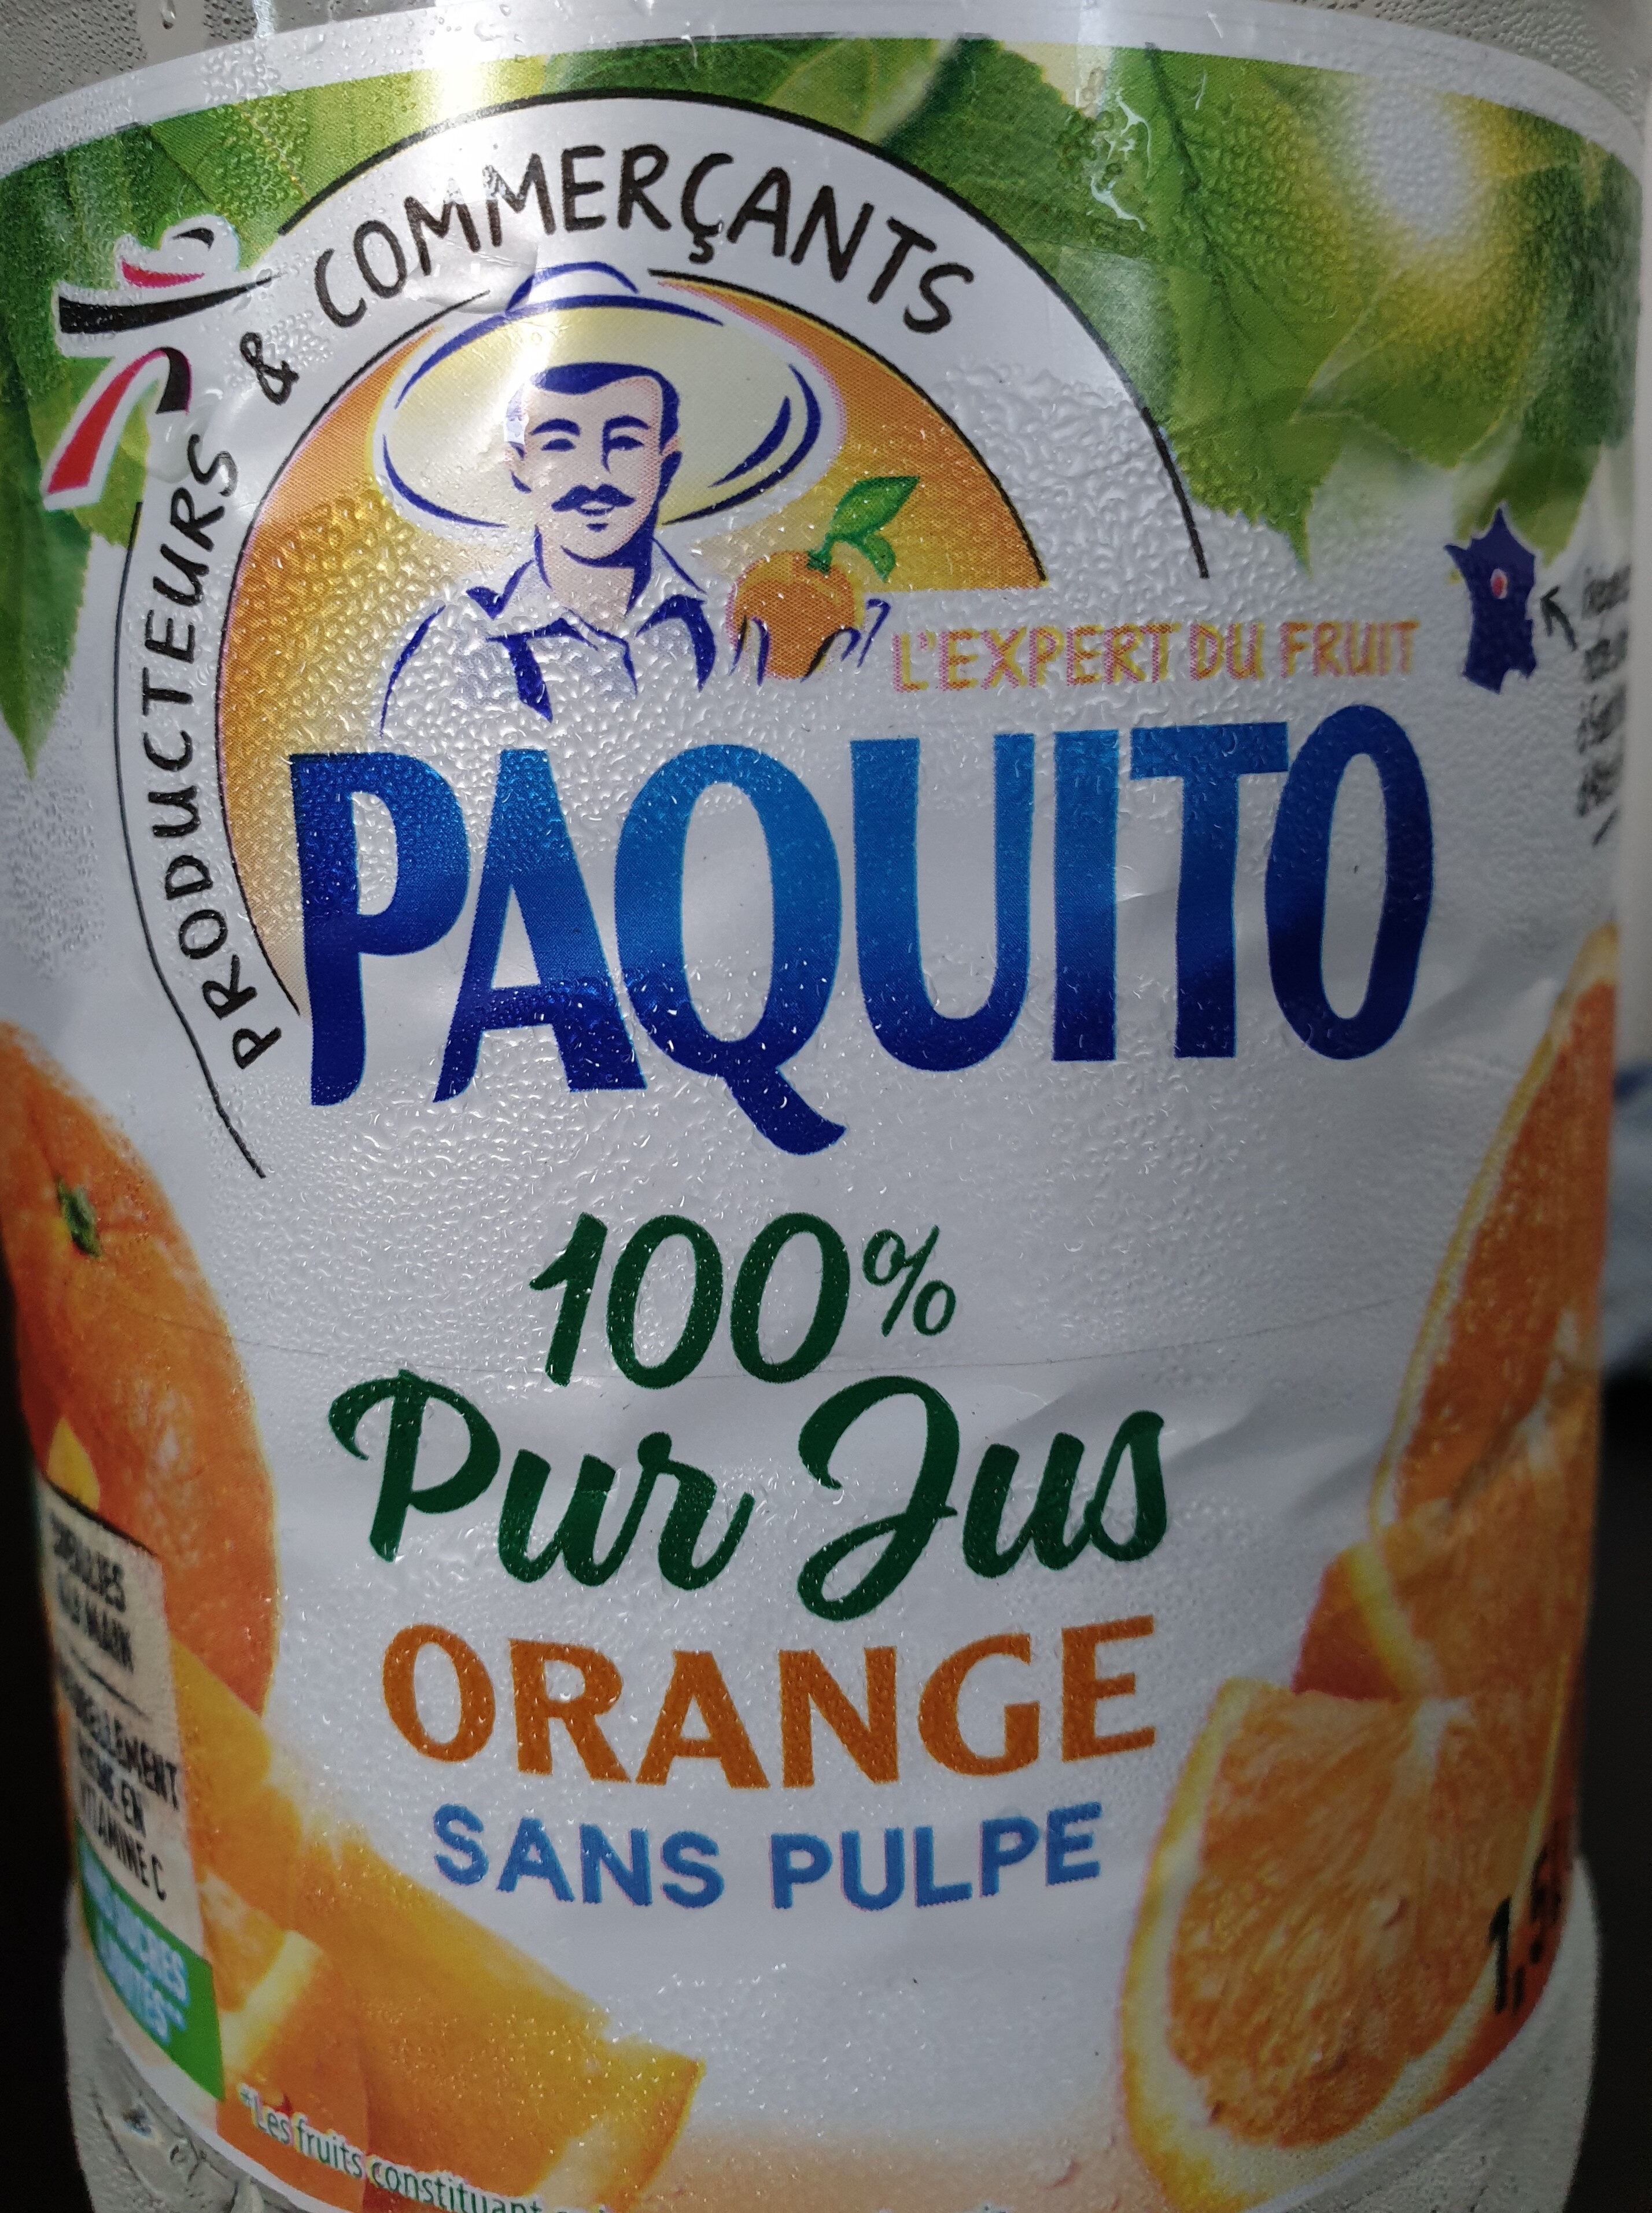 100% Pur Jus Orange sans pulpe - Product - fr